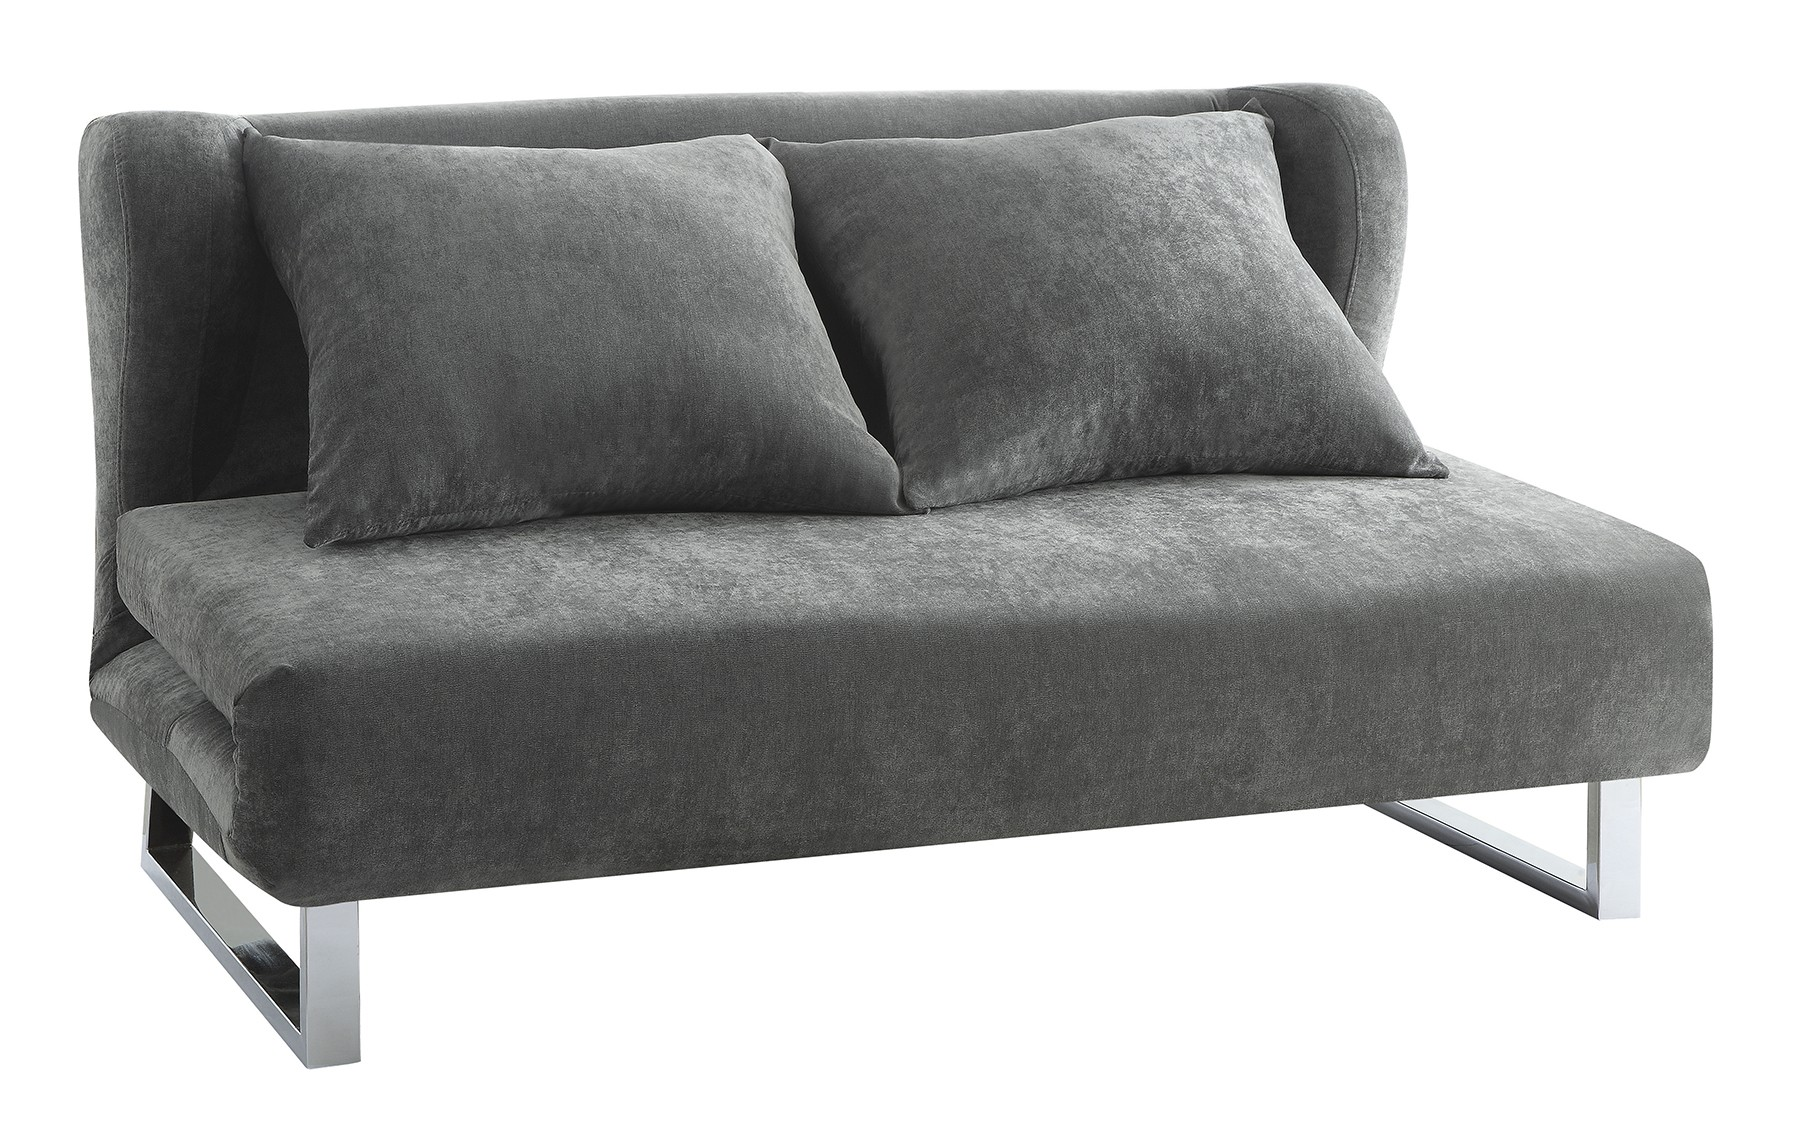 CONTEMPORARY GREY SOFA BED Converts From Sofa To Chaise Lounge Sofa To  Queen Bed